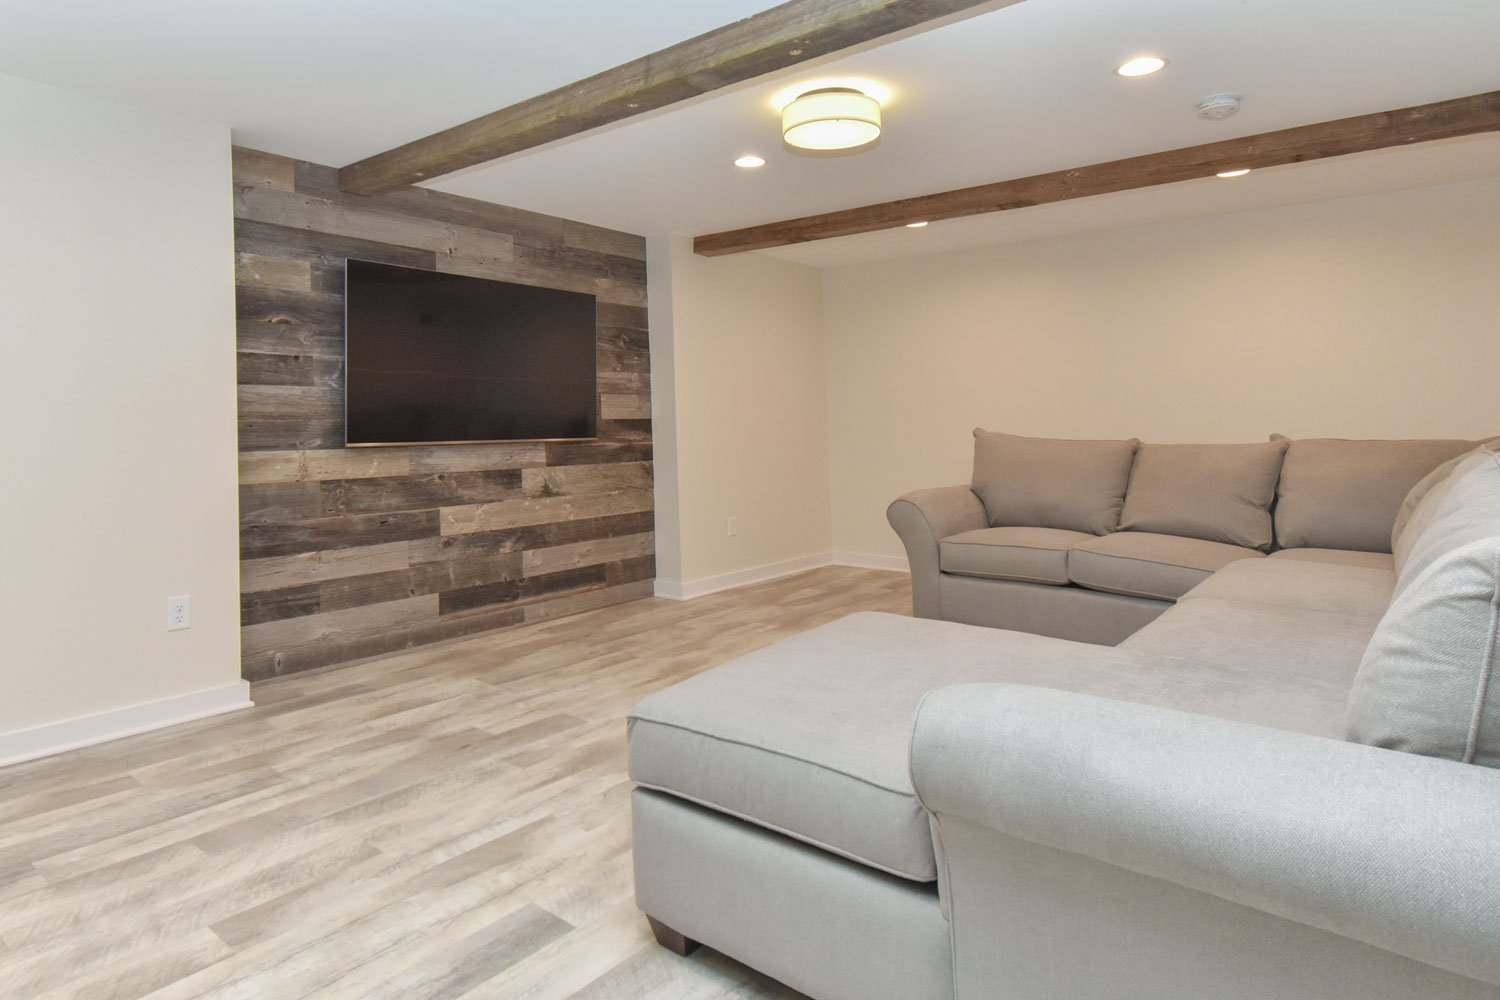 Basement bar remodel with barn wood wall